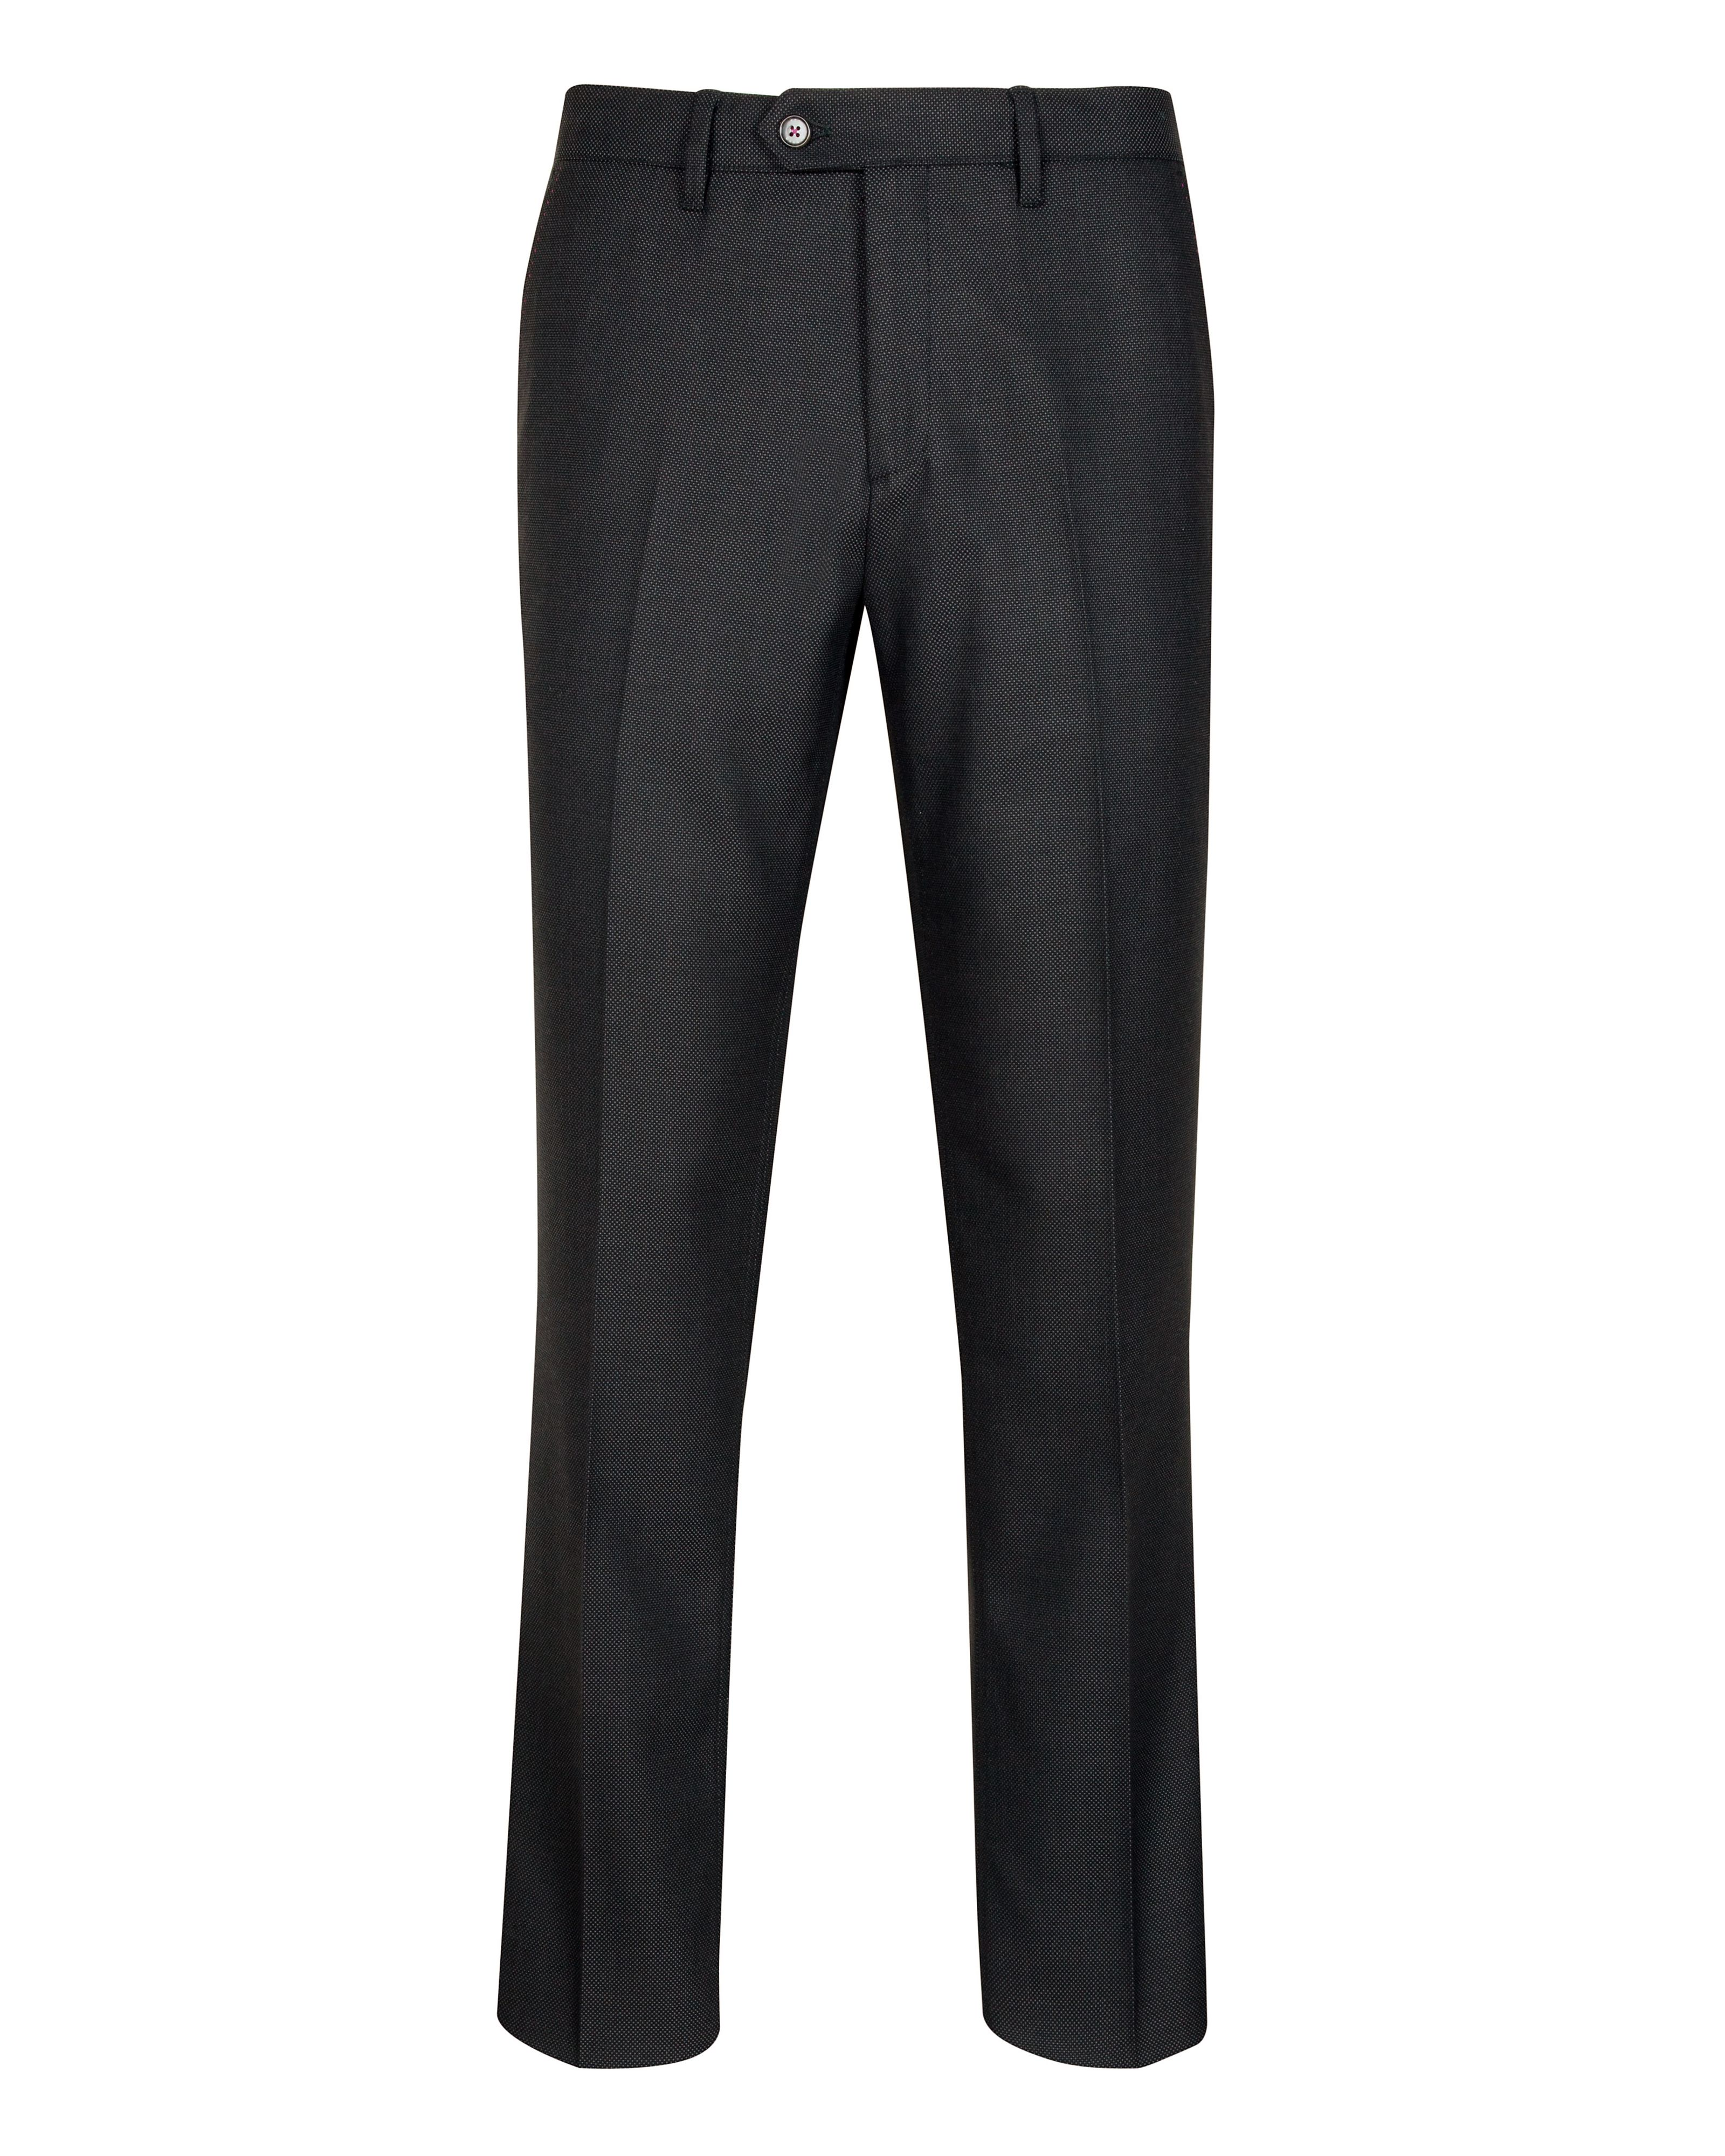 Elratro wool trouser